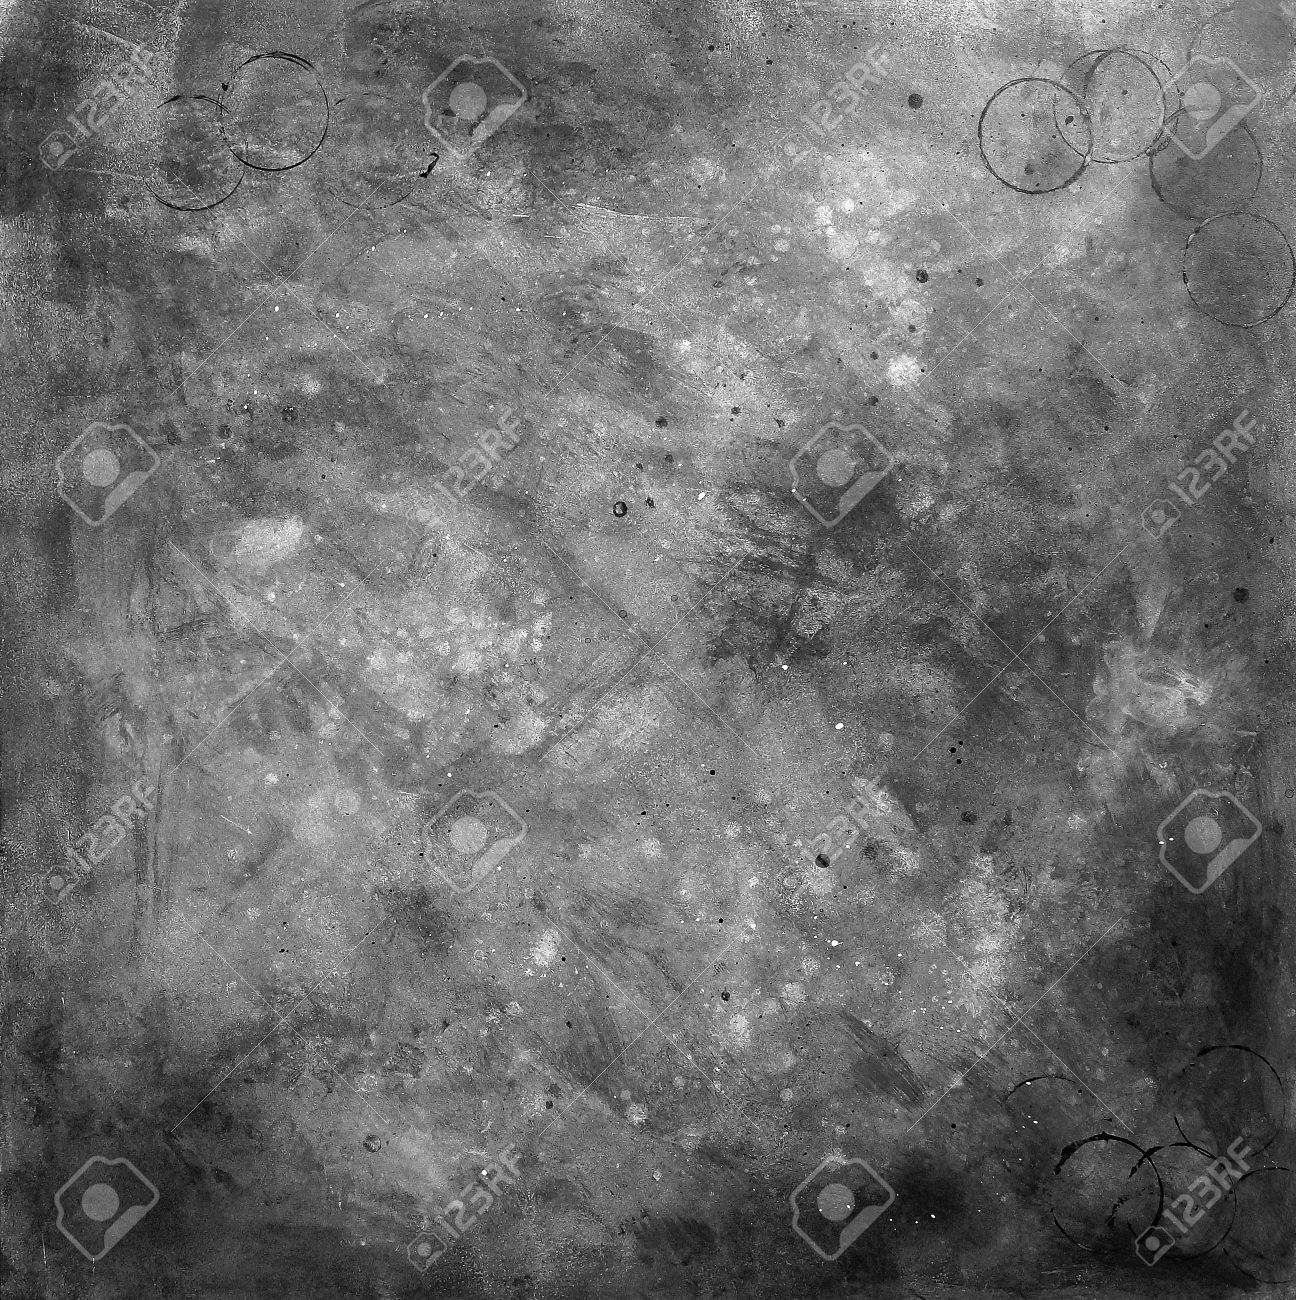 Textured Gray Background Grunge Texture Black And White Paint